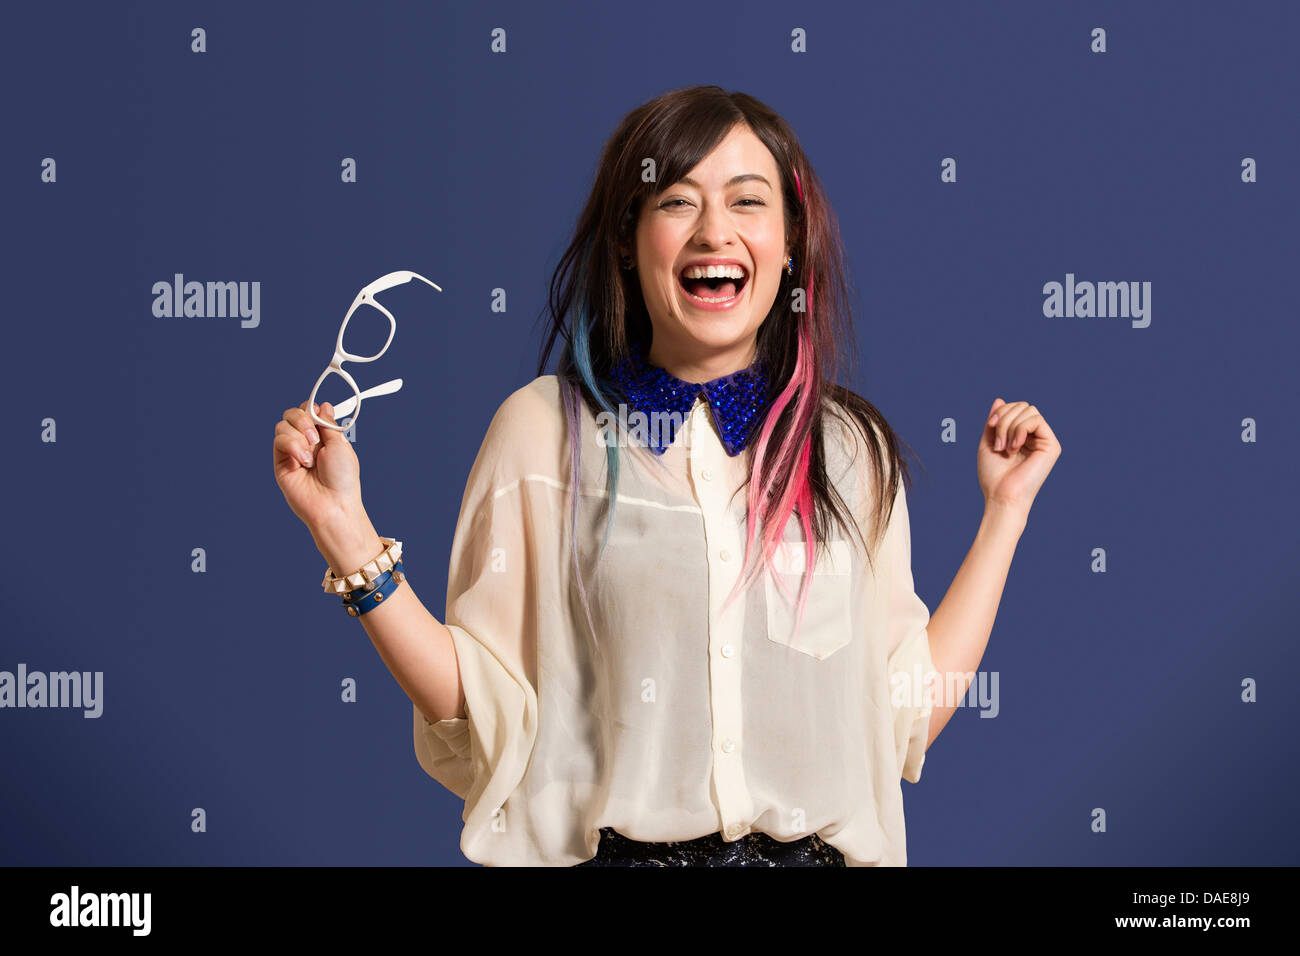 Portrait of young woman with dyed hair holding glasses - Stock Image